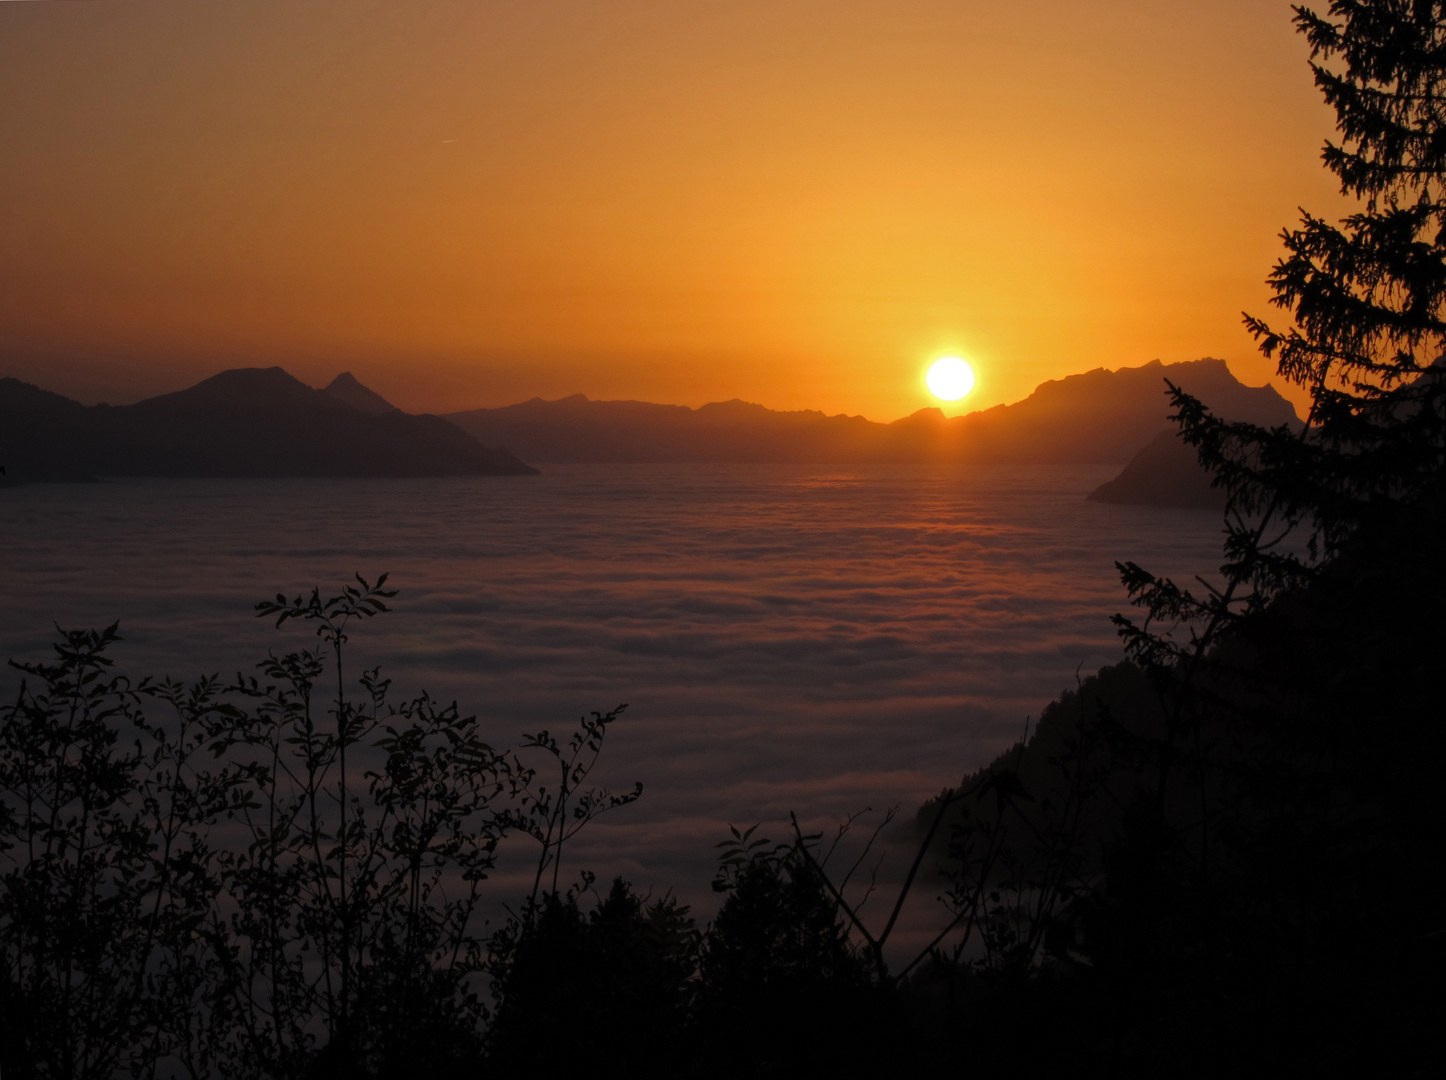 Sunset over a misty Lake Lucerne, Switzerland